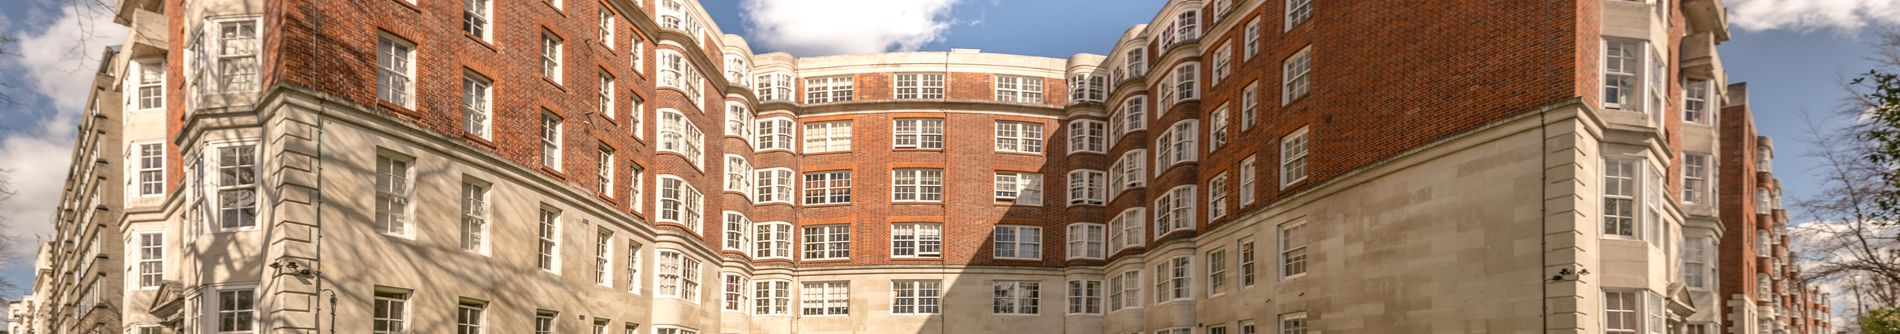 Asset Management for Buildings in Prime Central London